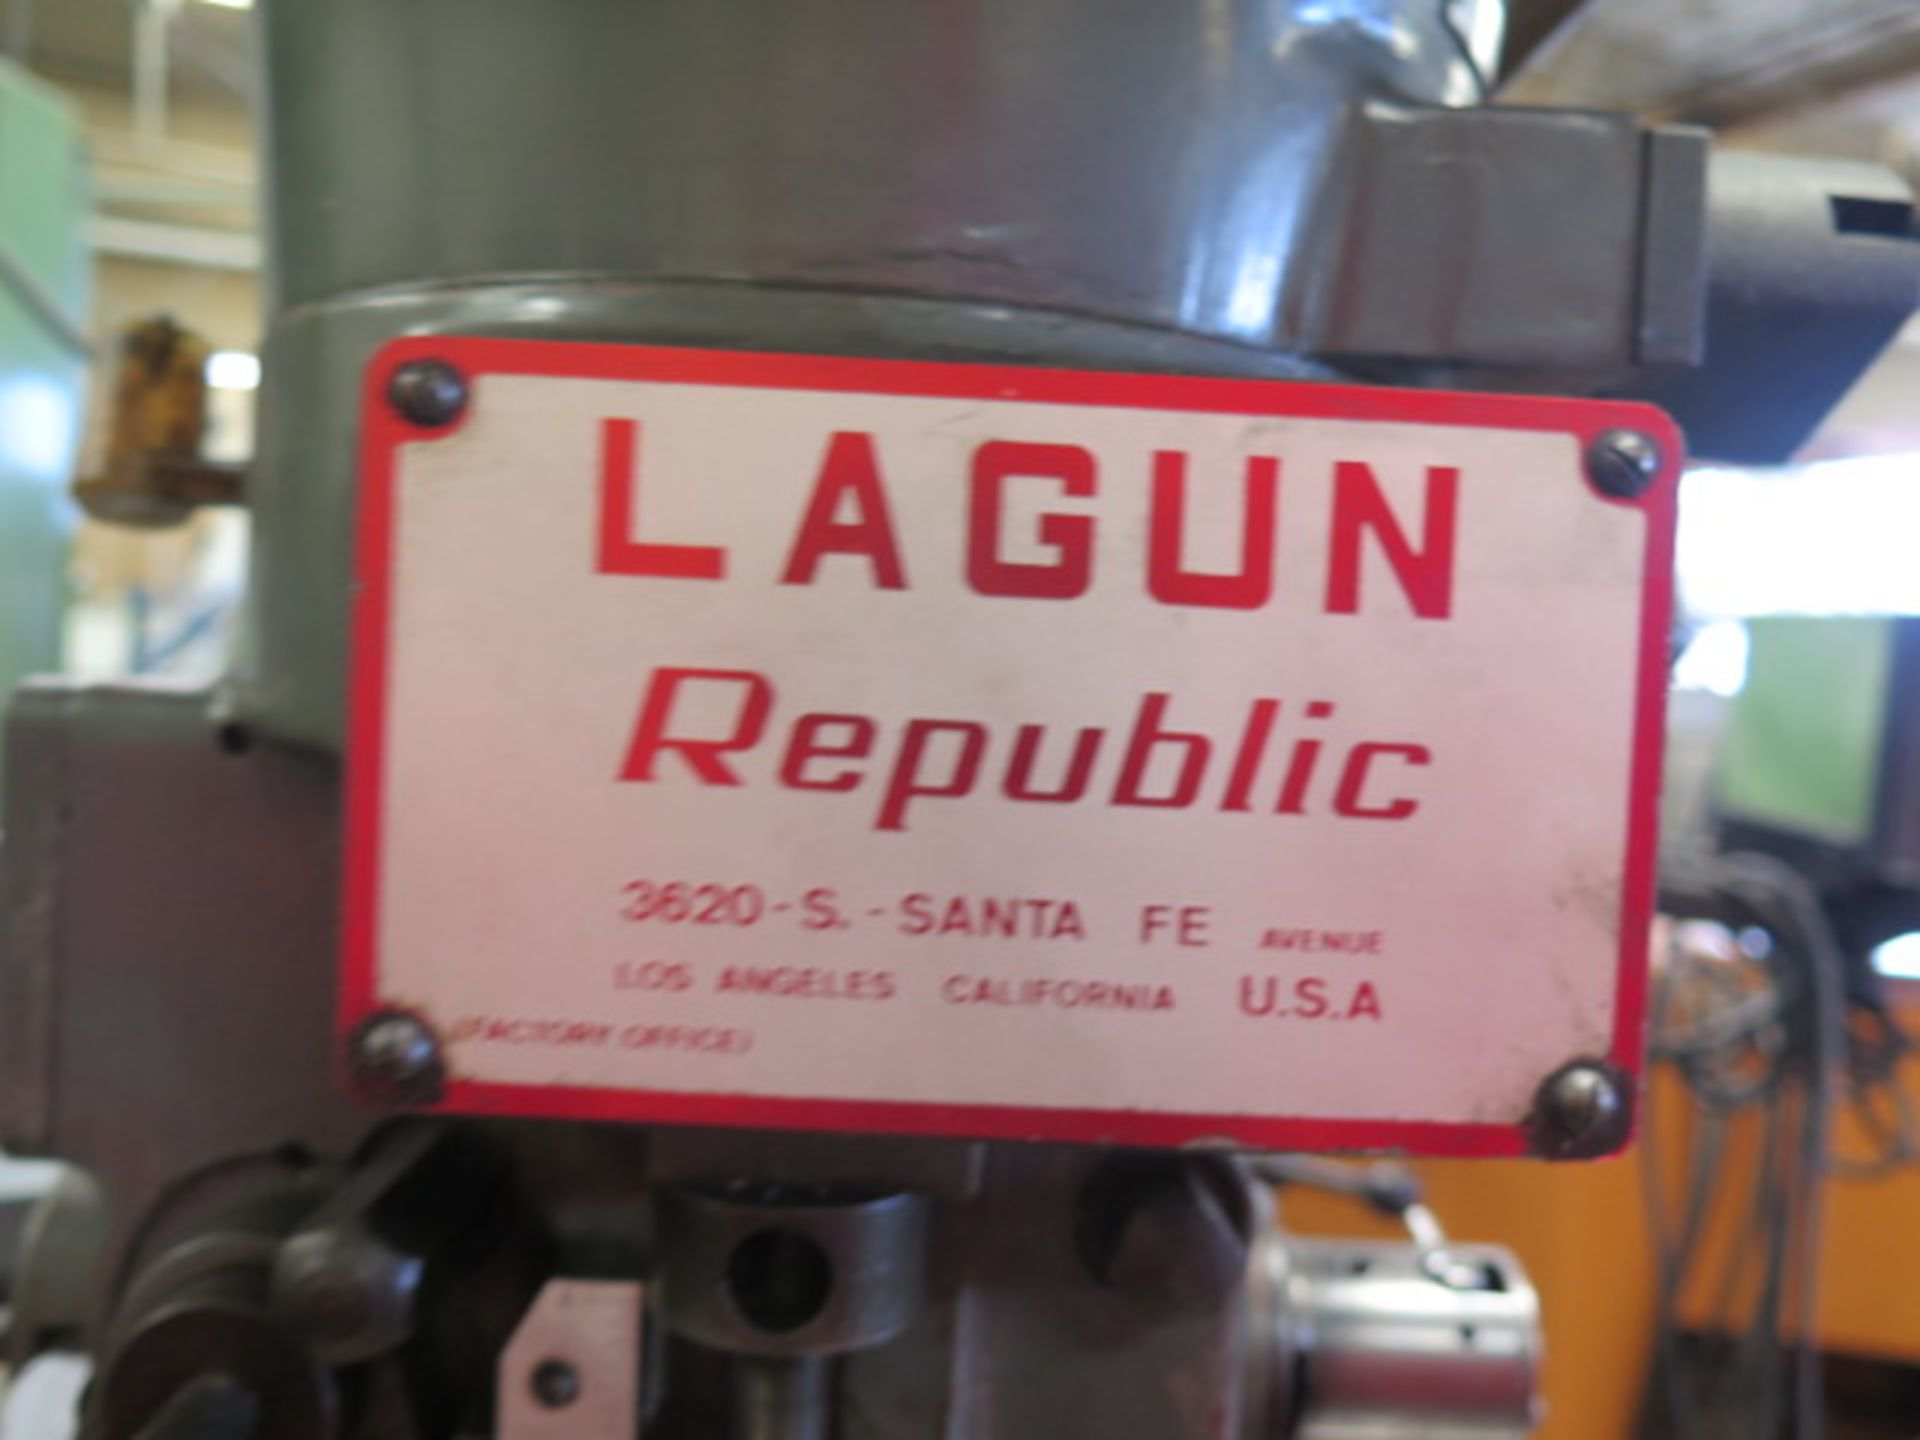 """Lagun FT-1 Vertical Mill w/ Mitutoyo DRO, 55-2940 RPM, 8-Speeds, Power Feed, 9"""" x 42"""" Table (SOLD - Image 3 of 14"""